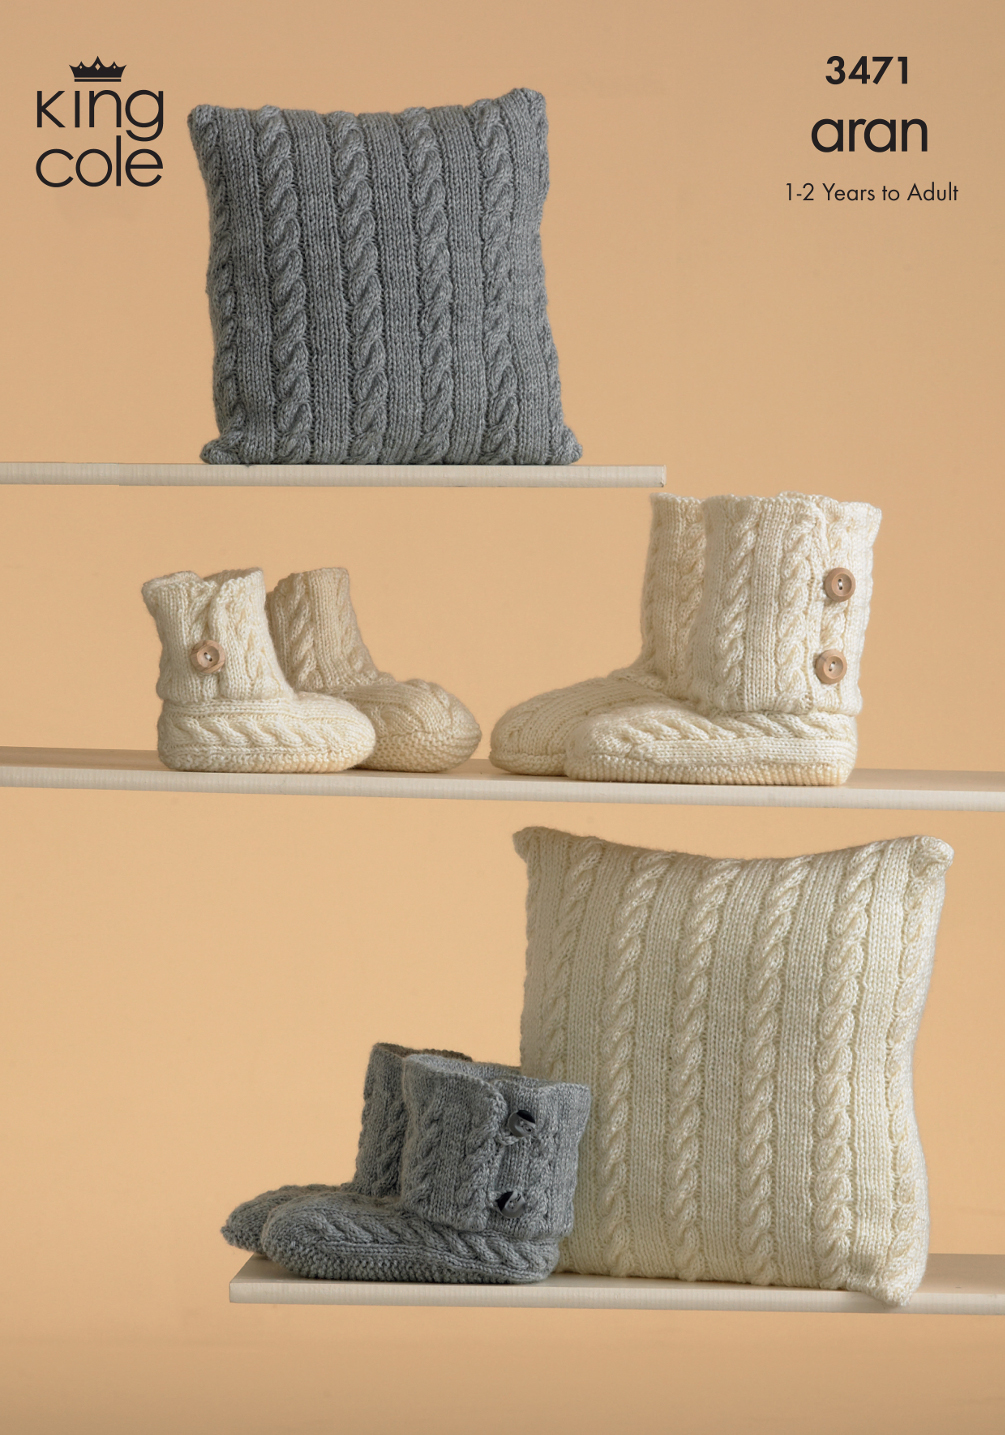 Knitting Pattern King Cole : King Cole Aran Knitting Pattern Warm Knitted Boot Slippers ...